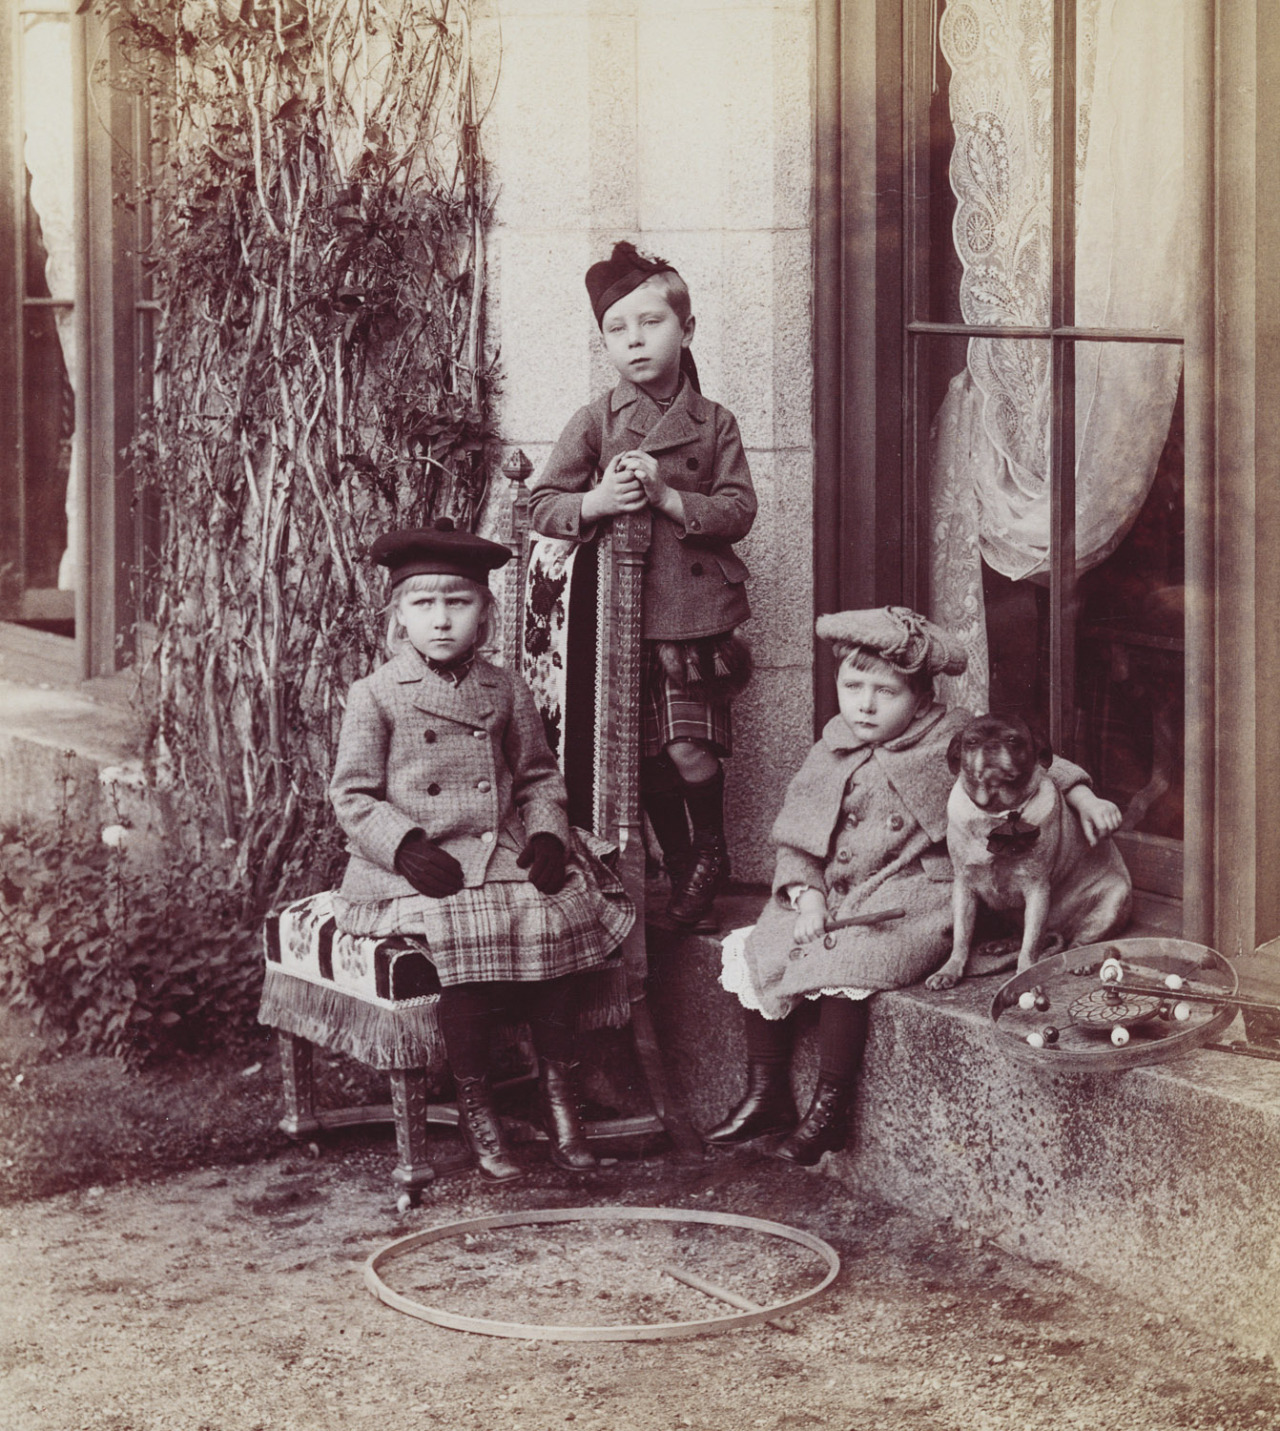 The three eldest children of Princess Beatrice and Prince Henry of Battenberg, with a pug, at Balmoral in September 1891. From left to right: Princess Victoria Eugenie (1887-1969); Prince Alexander (1886-1960) and Prince Leopold (1889-1922). Princess Victoria, known as Ena, subsequently married King Alfonso XIII of Spain.